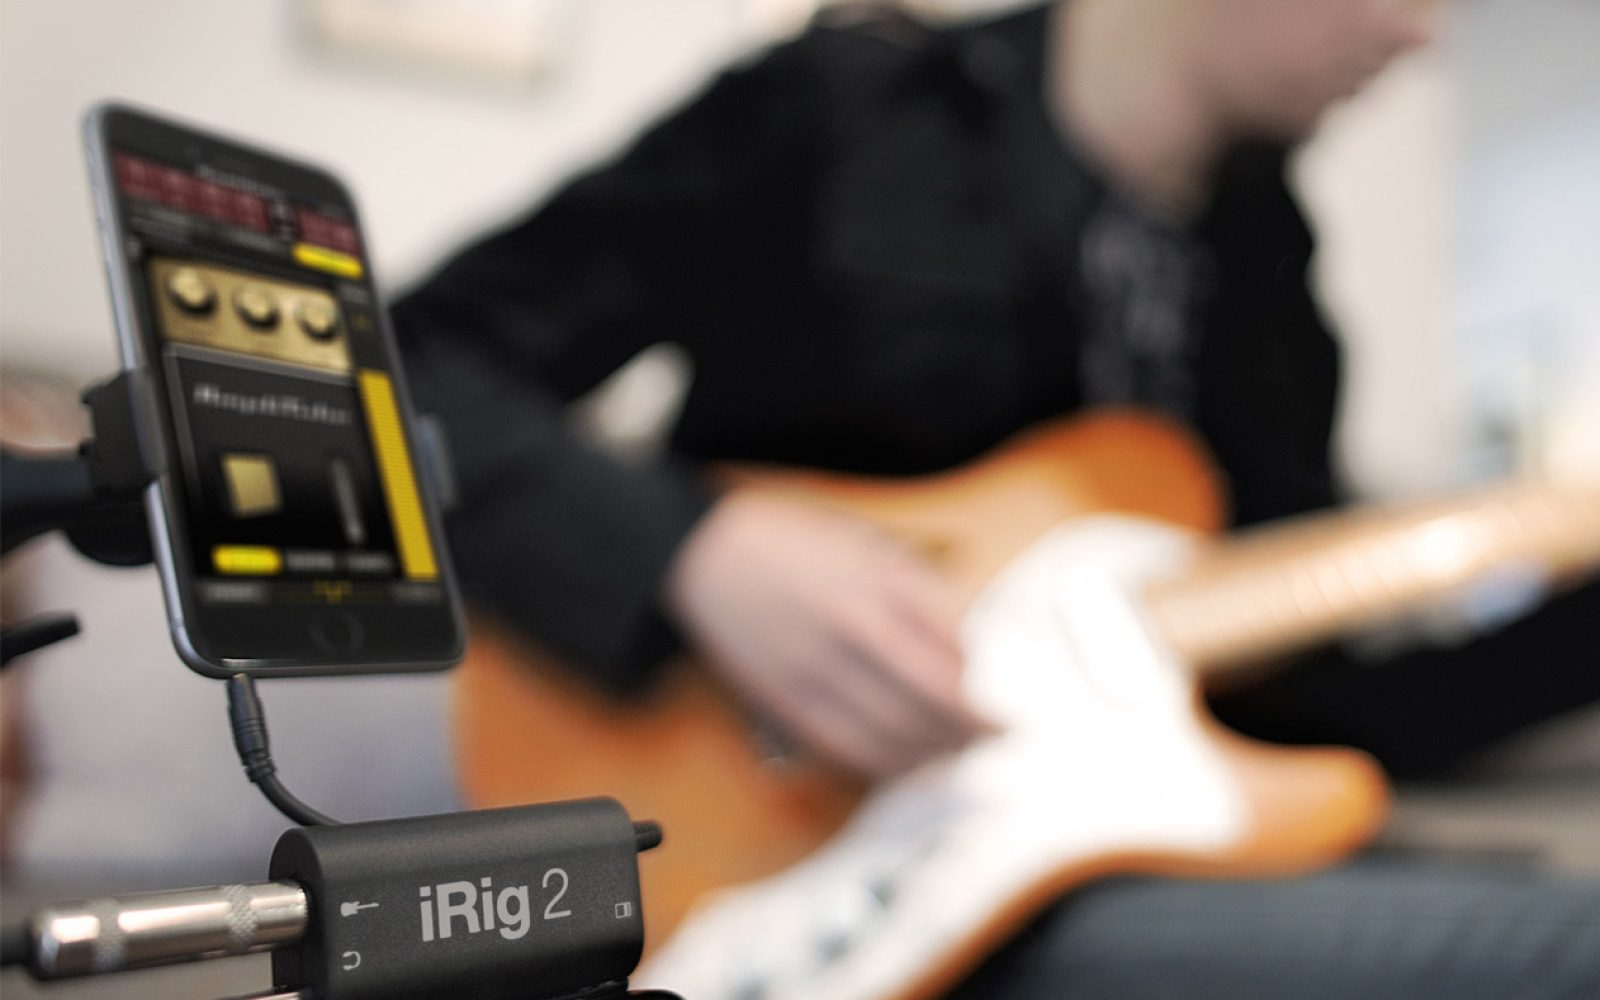 ik 39 s new irig 2 guitar instrument audio interface for ios mac android is now available 9to5toys. Black Bedroom Furniture Sets. Home Design Ideas